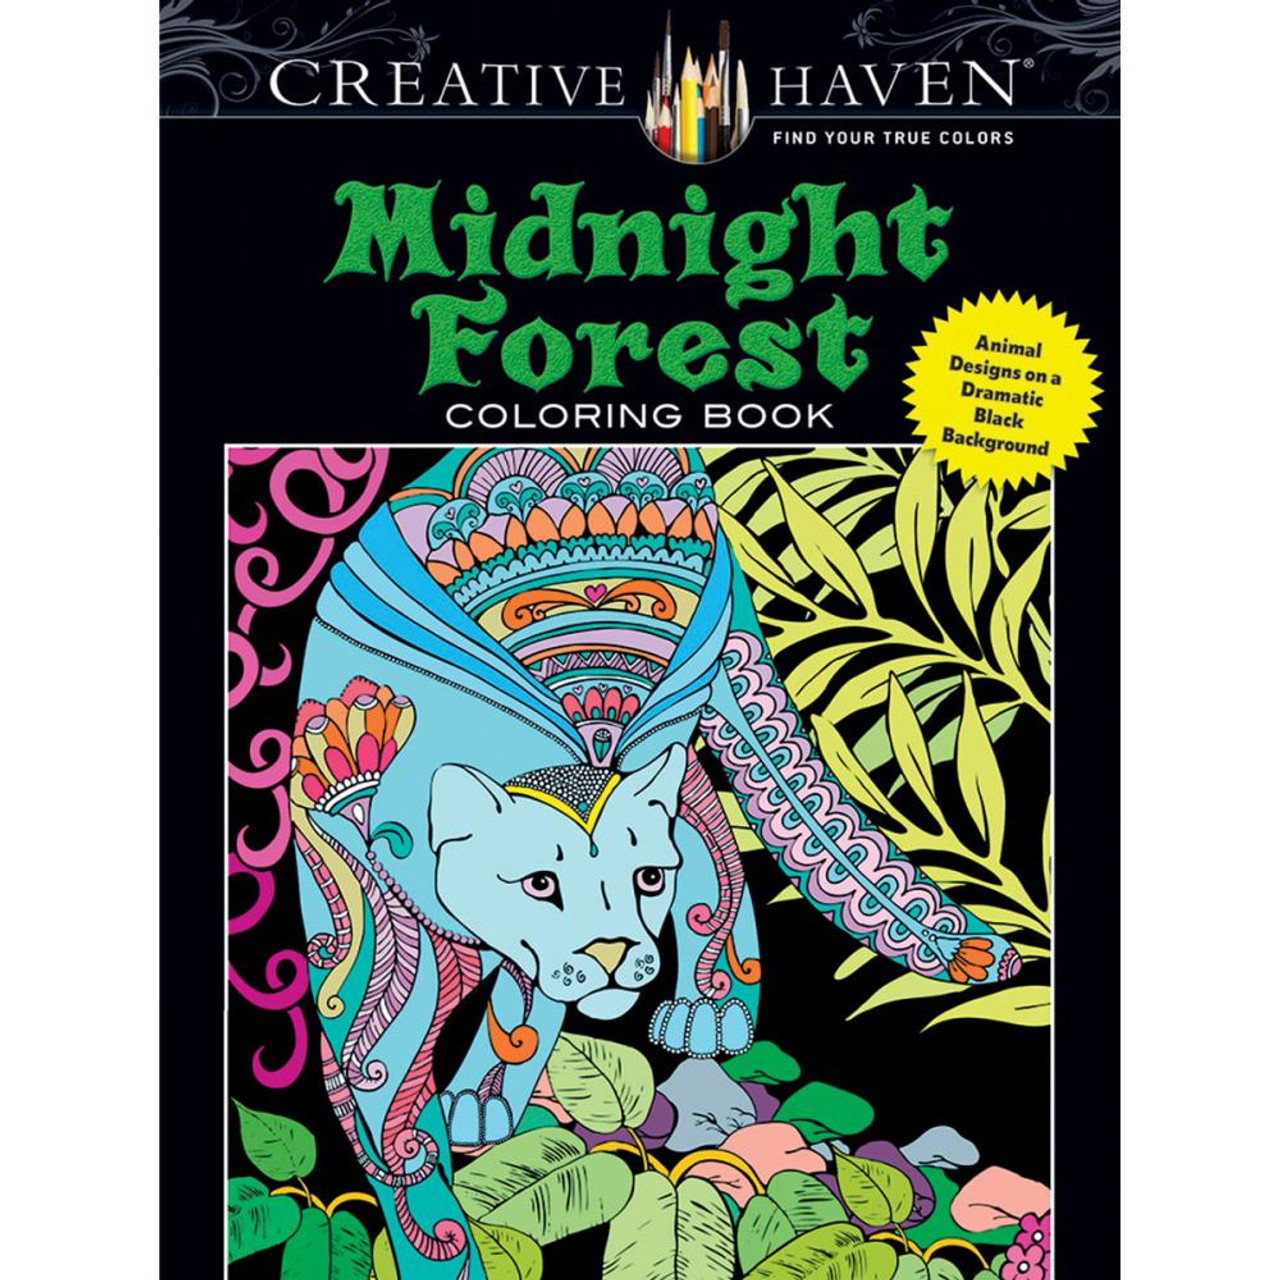 creative haven coloring book midnight forest - Creative Haven Coloring Books